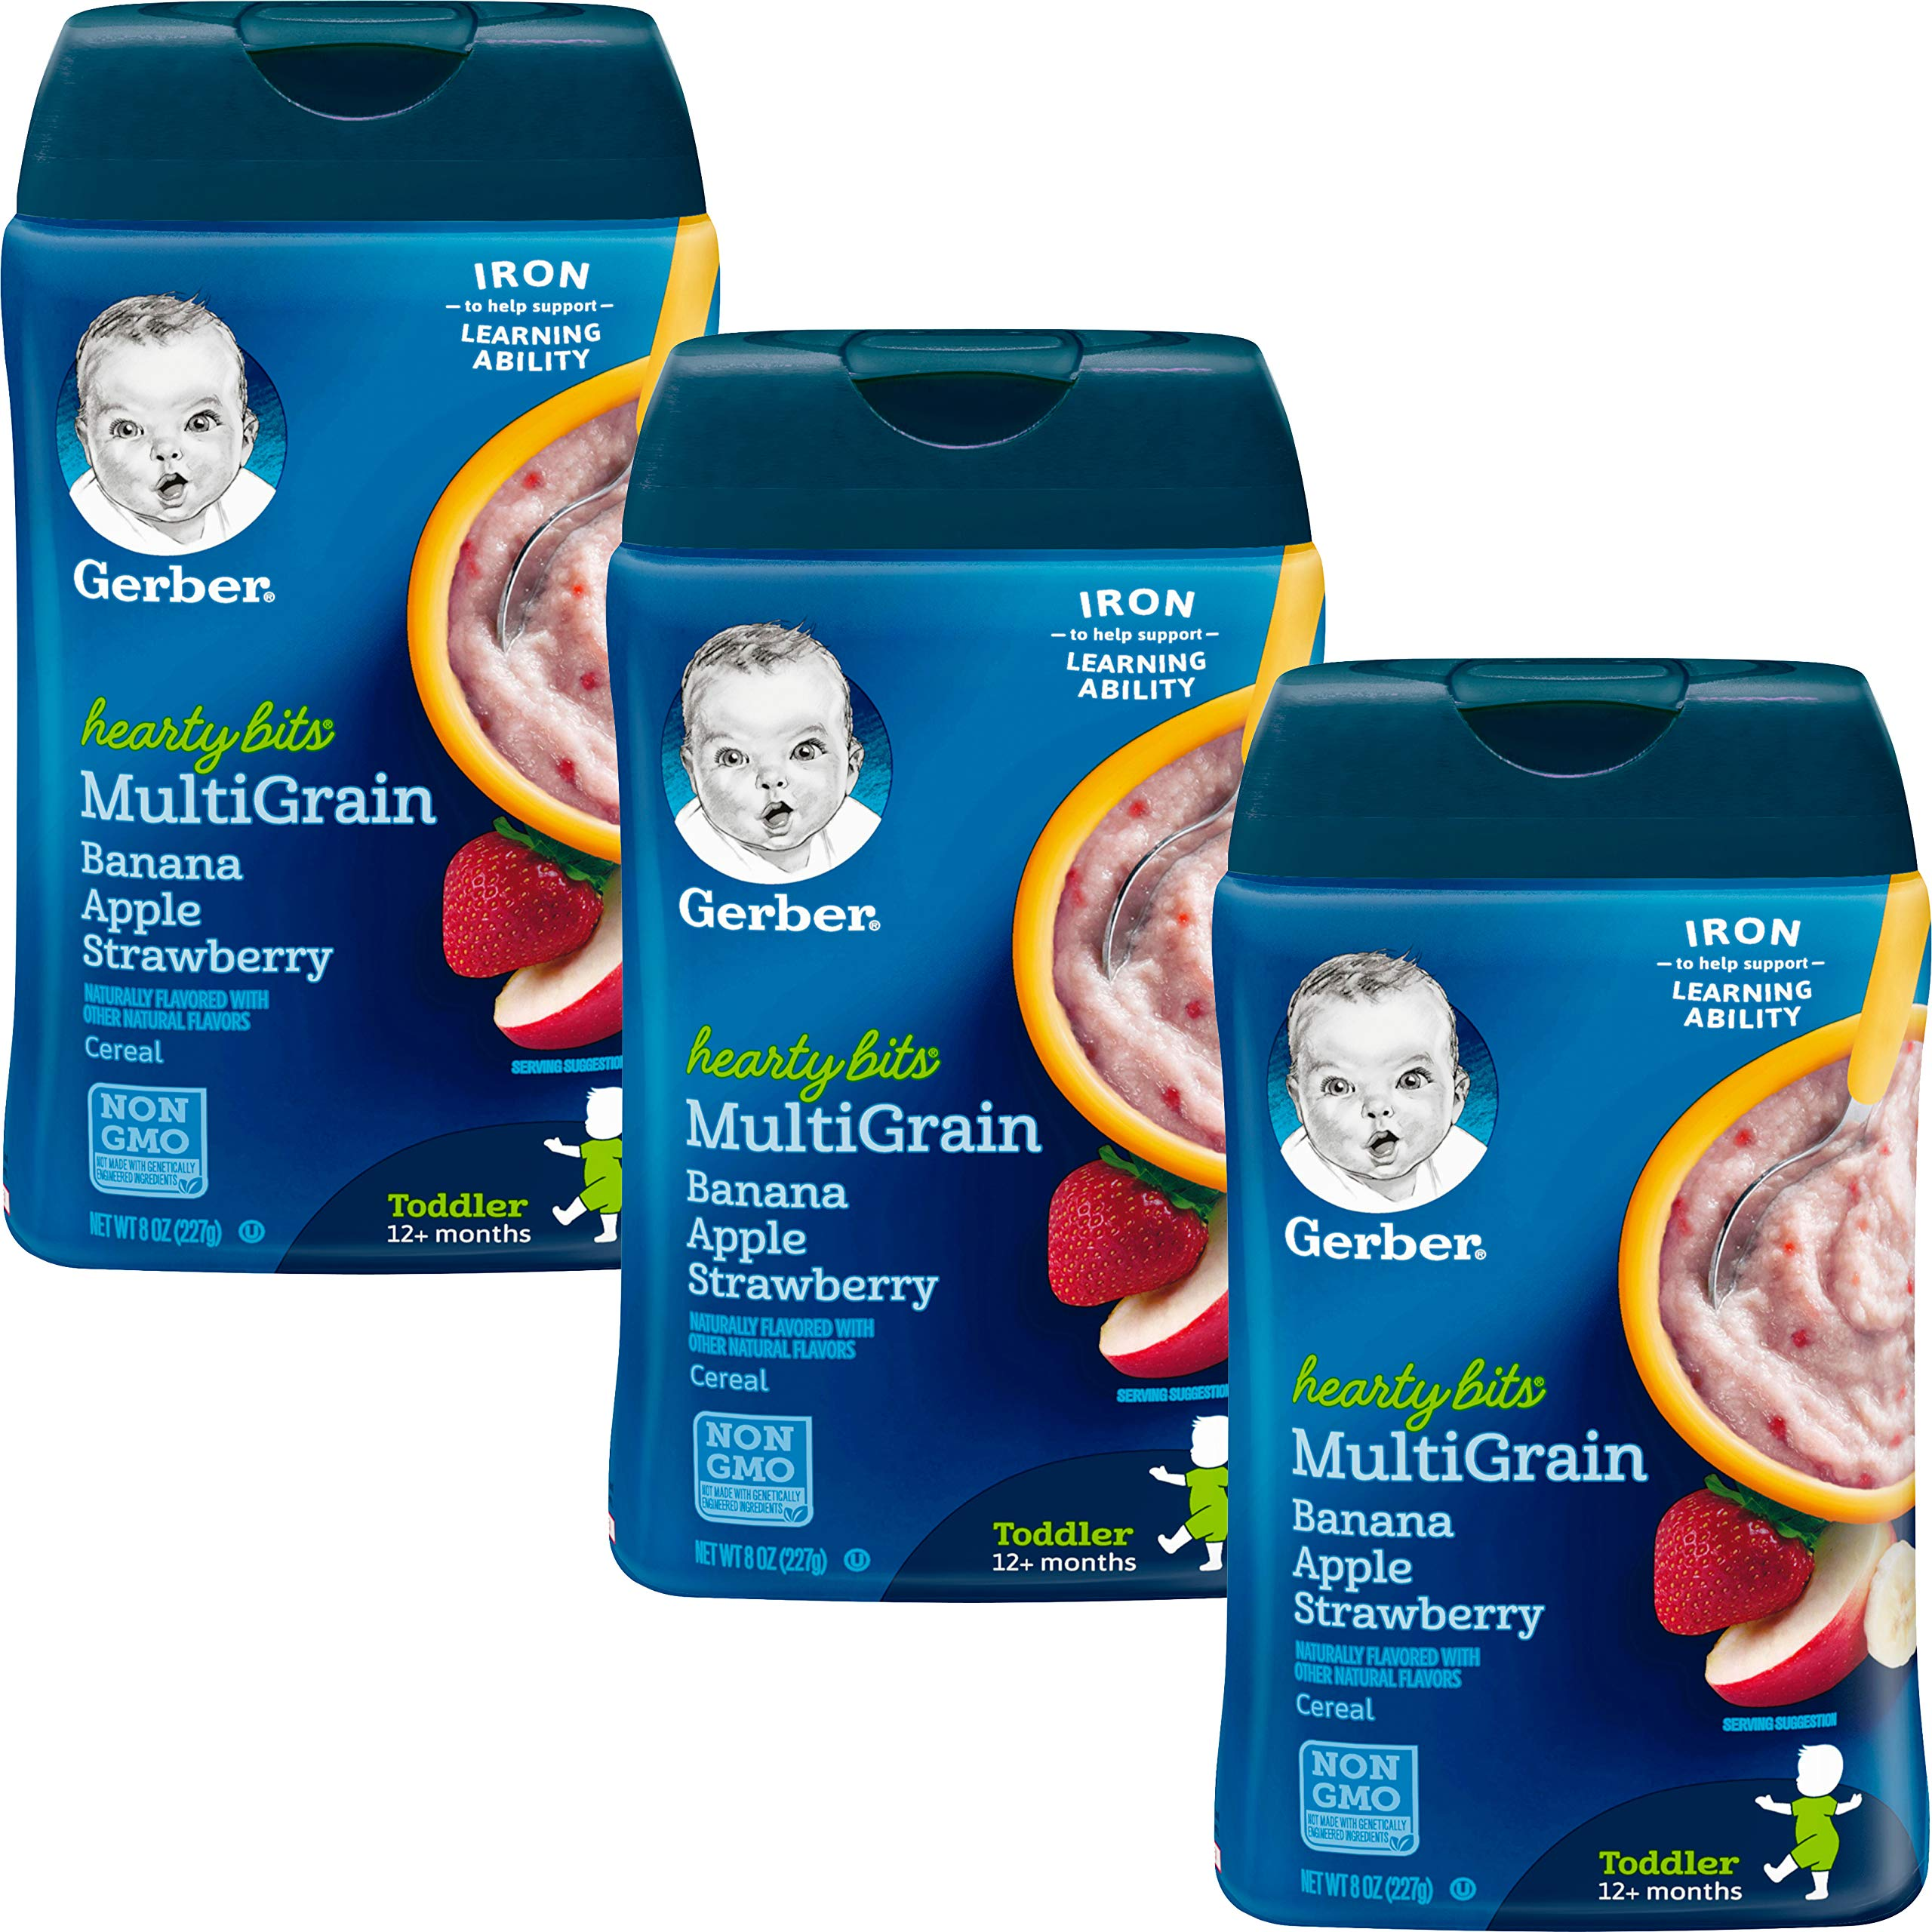 Gerber Baby Cereal Hearty Bits Multigrain Cereal Banana Apple Strawberry, 8 Ounce (Pack of 3) by Gerber